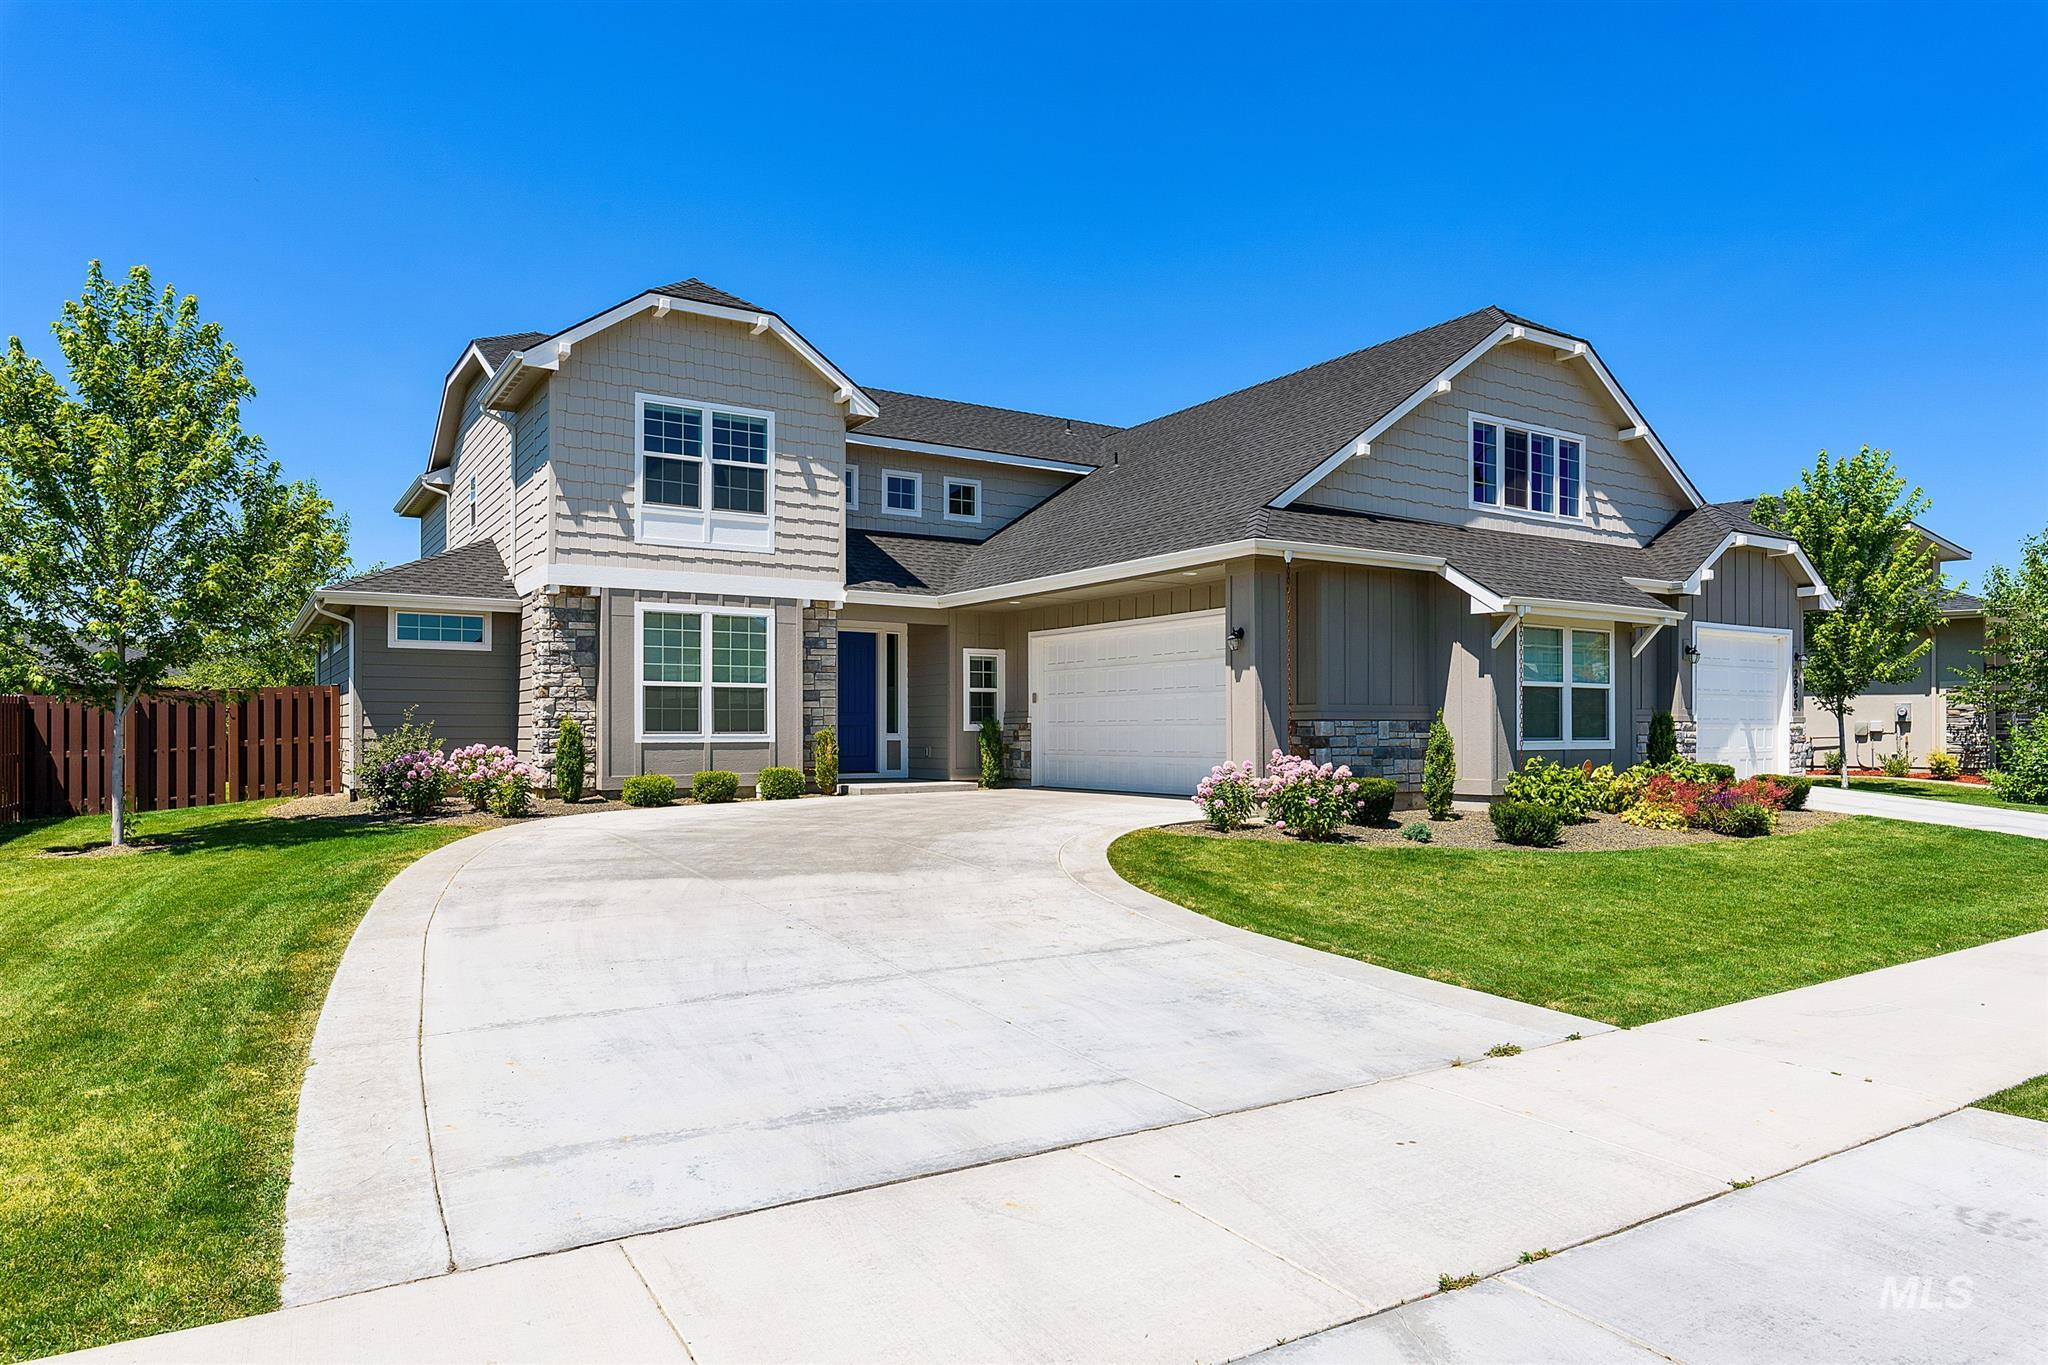 Photo for 2965 S Bergman Way, Eagle, ID 83616 (MLS # 98774705)